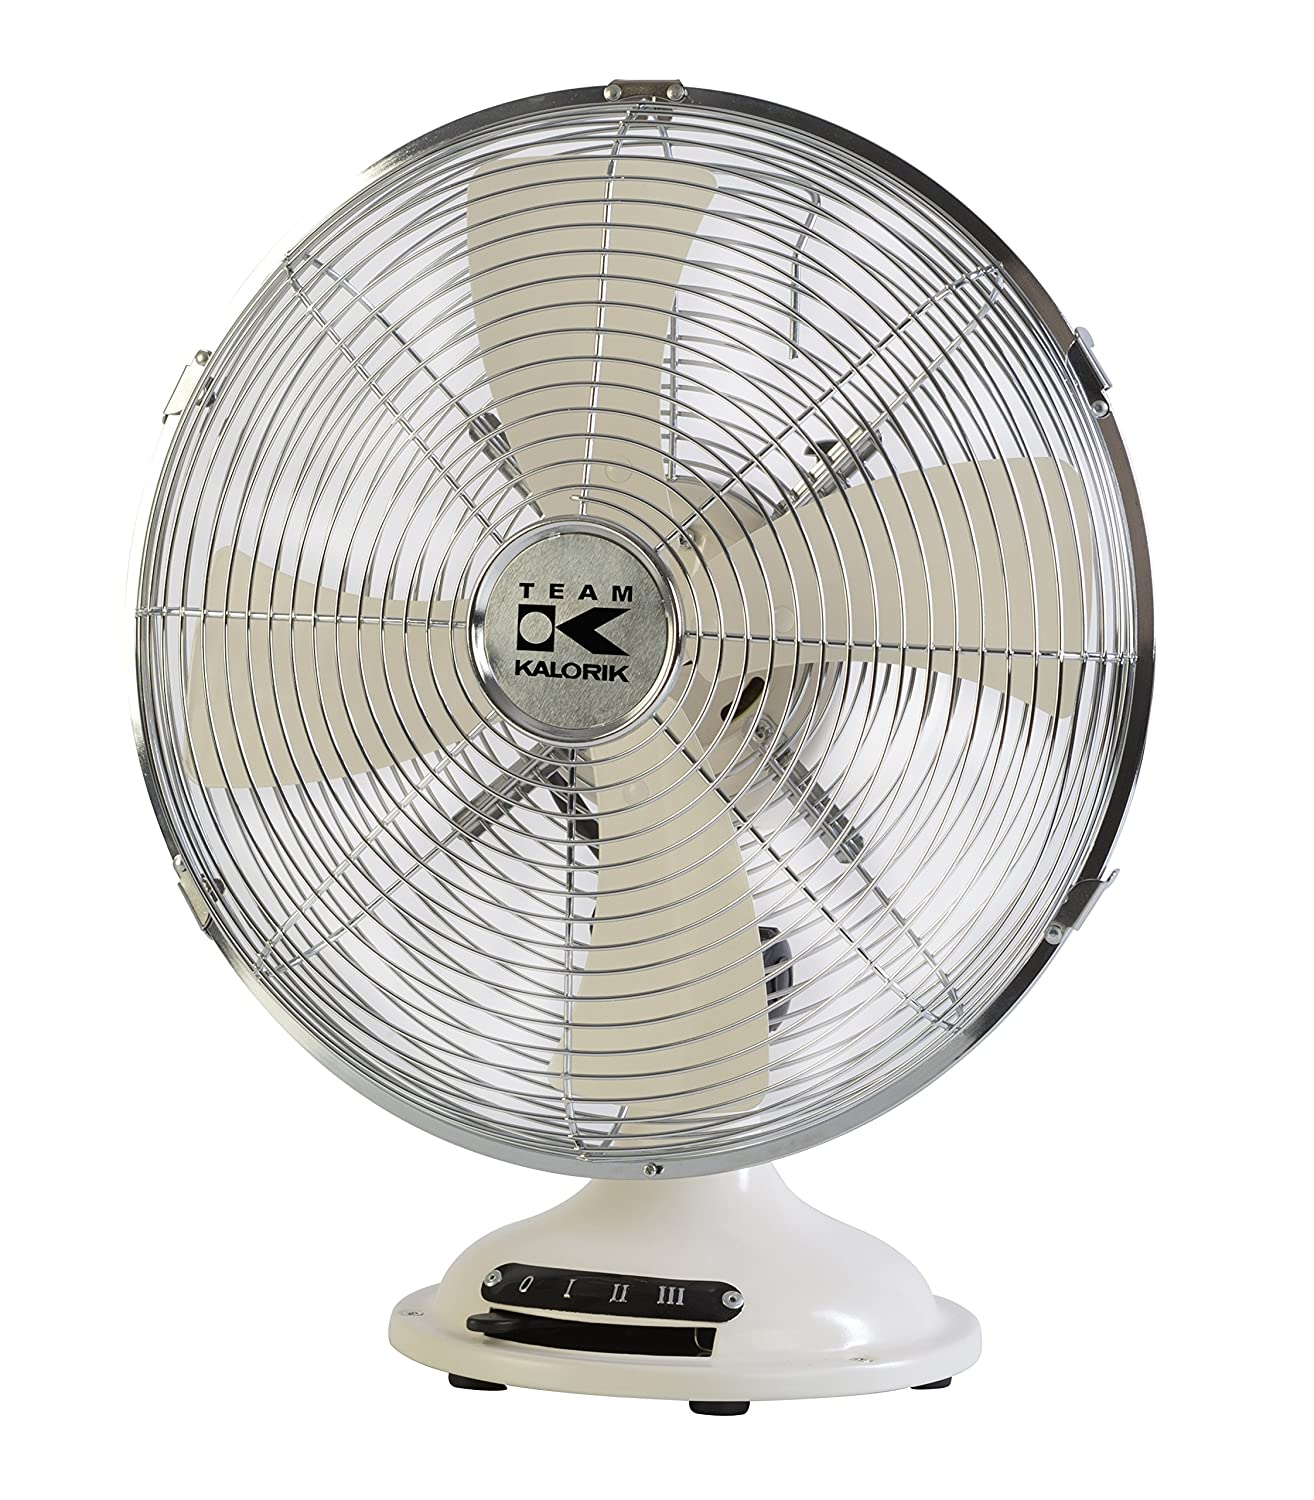 Team Kalorik Retro Metal Desk Fan, Oscillation Function, 3 different speed settings, Ø 30 cm, 35 W, Cream-White, TKG VT 1021 Ø 30 cm Efbe Elektrogeräte GmbH